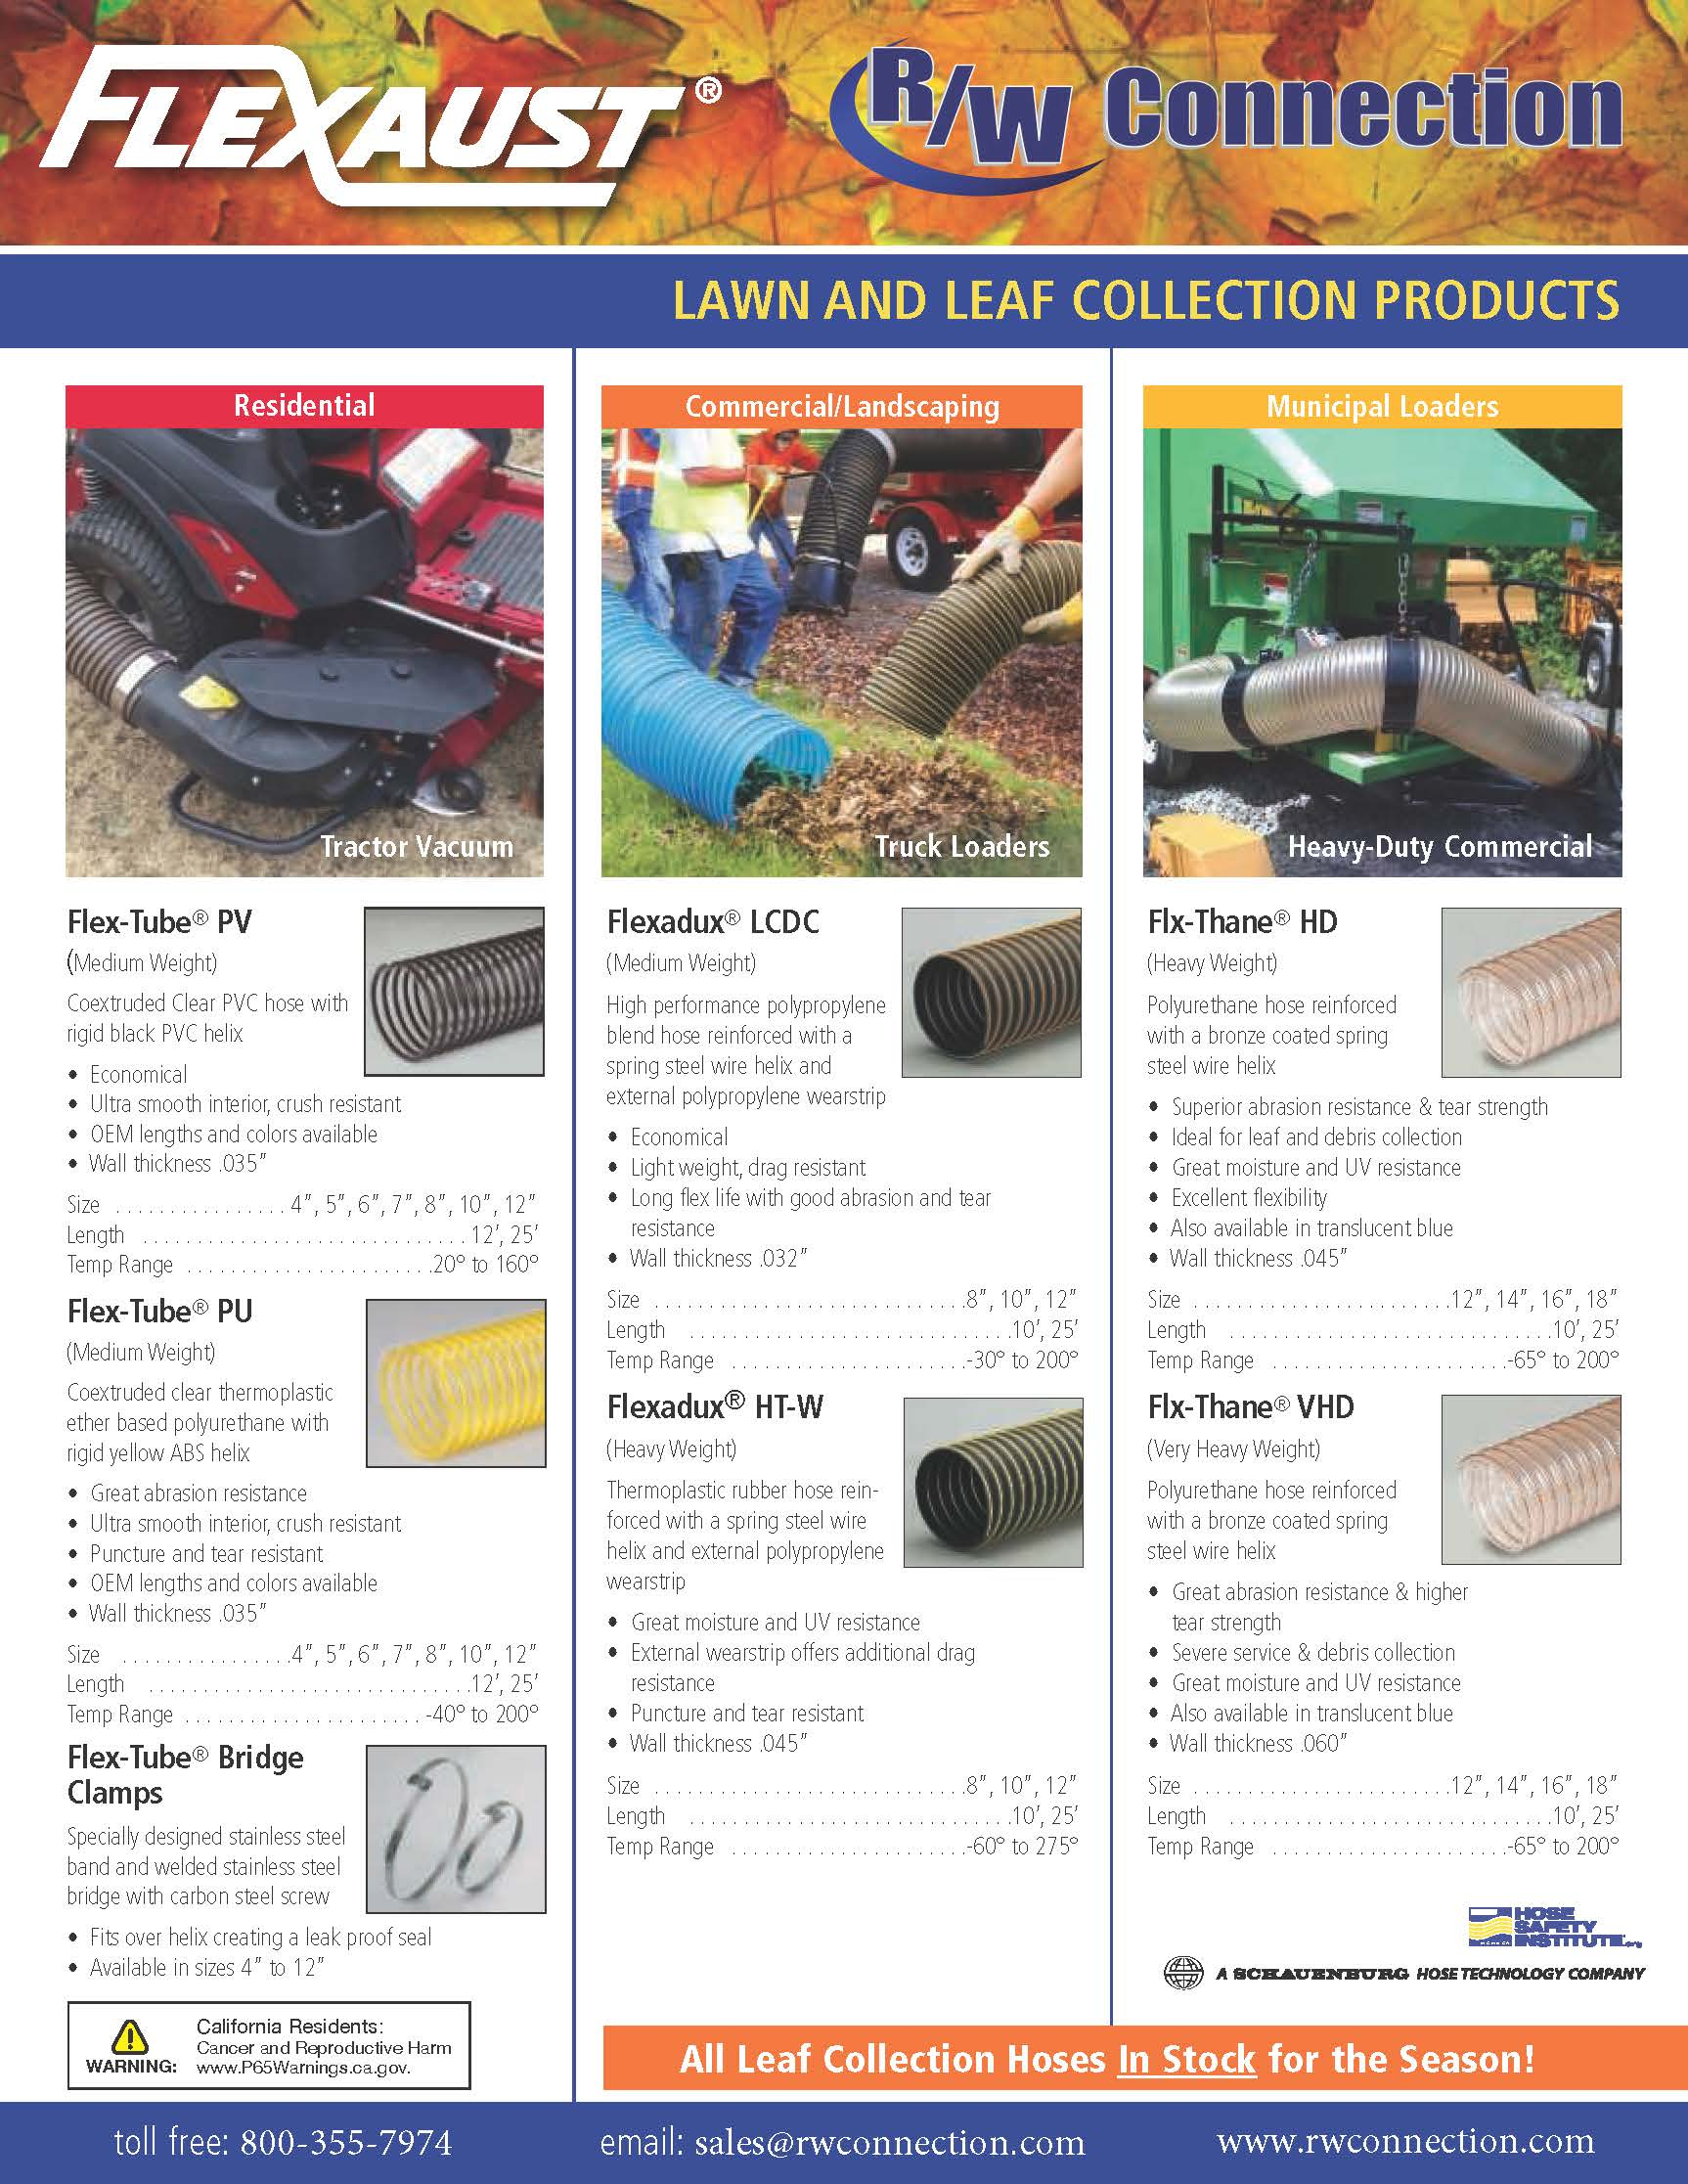 FLEXAUST Lawn and Leaf Collection Products